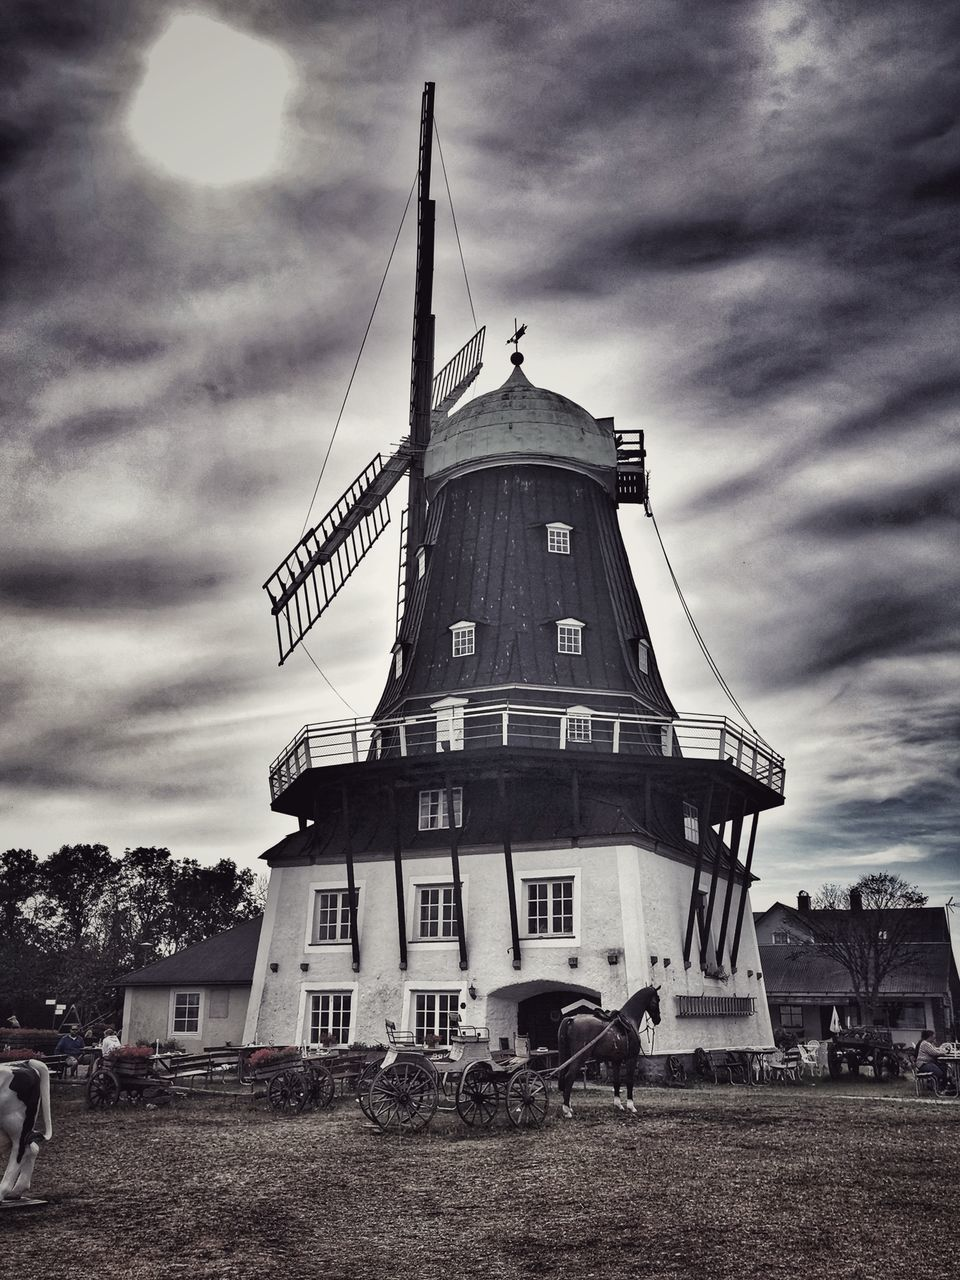 LOW ANGLE VIEW OF TRADITIONAL WINDMILL ON FIELD